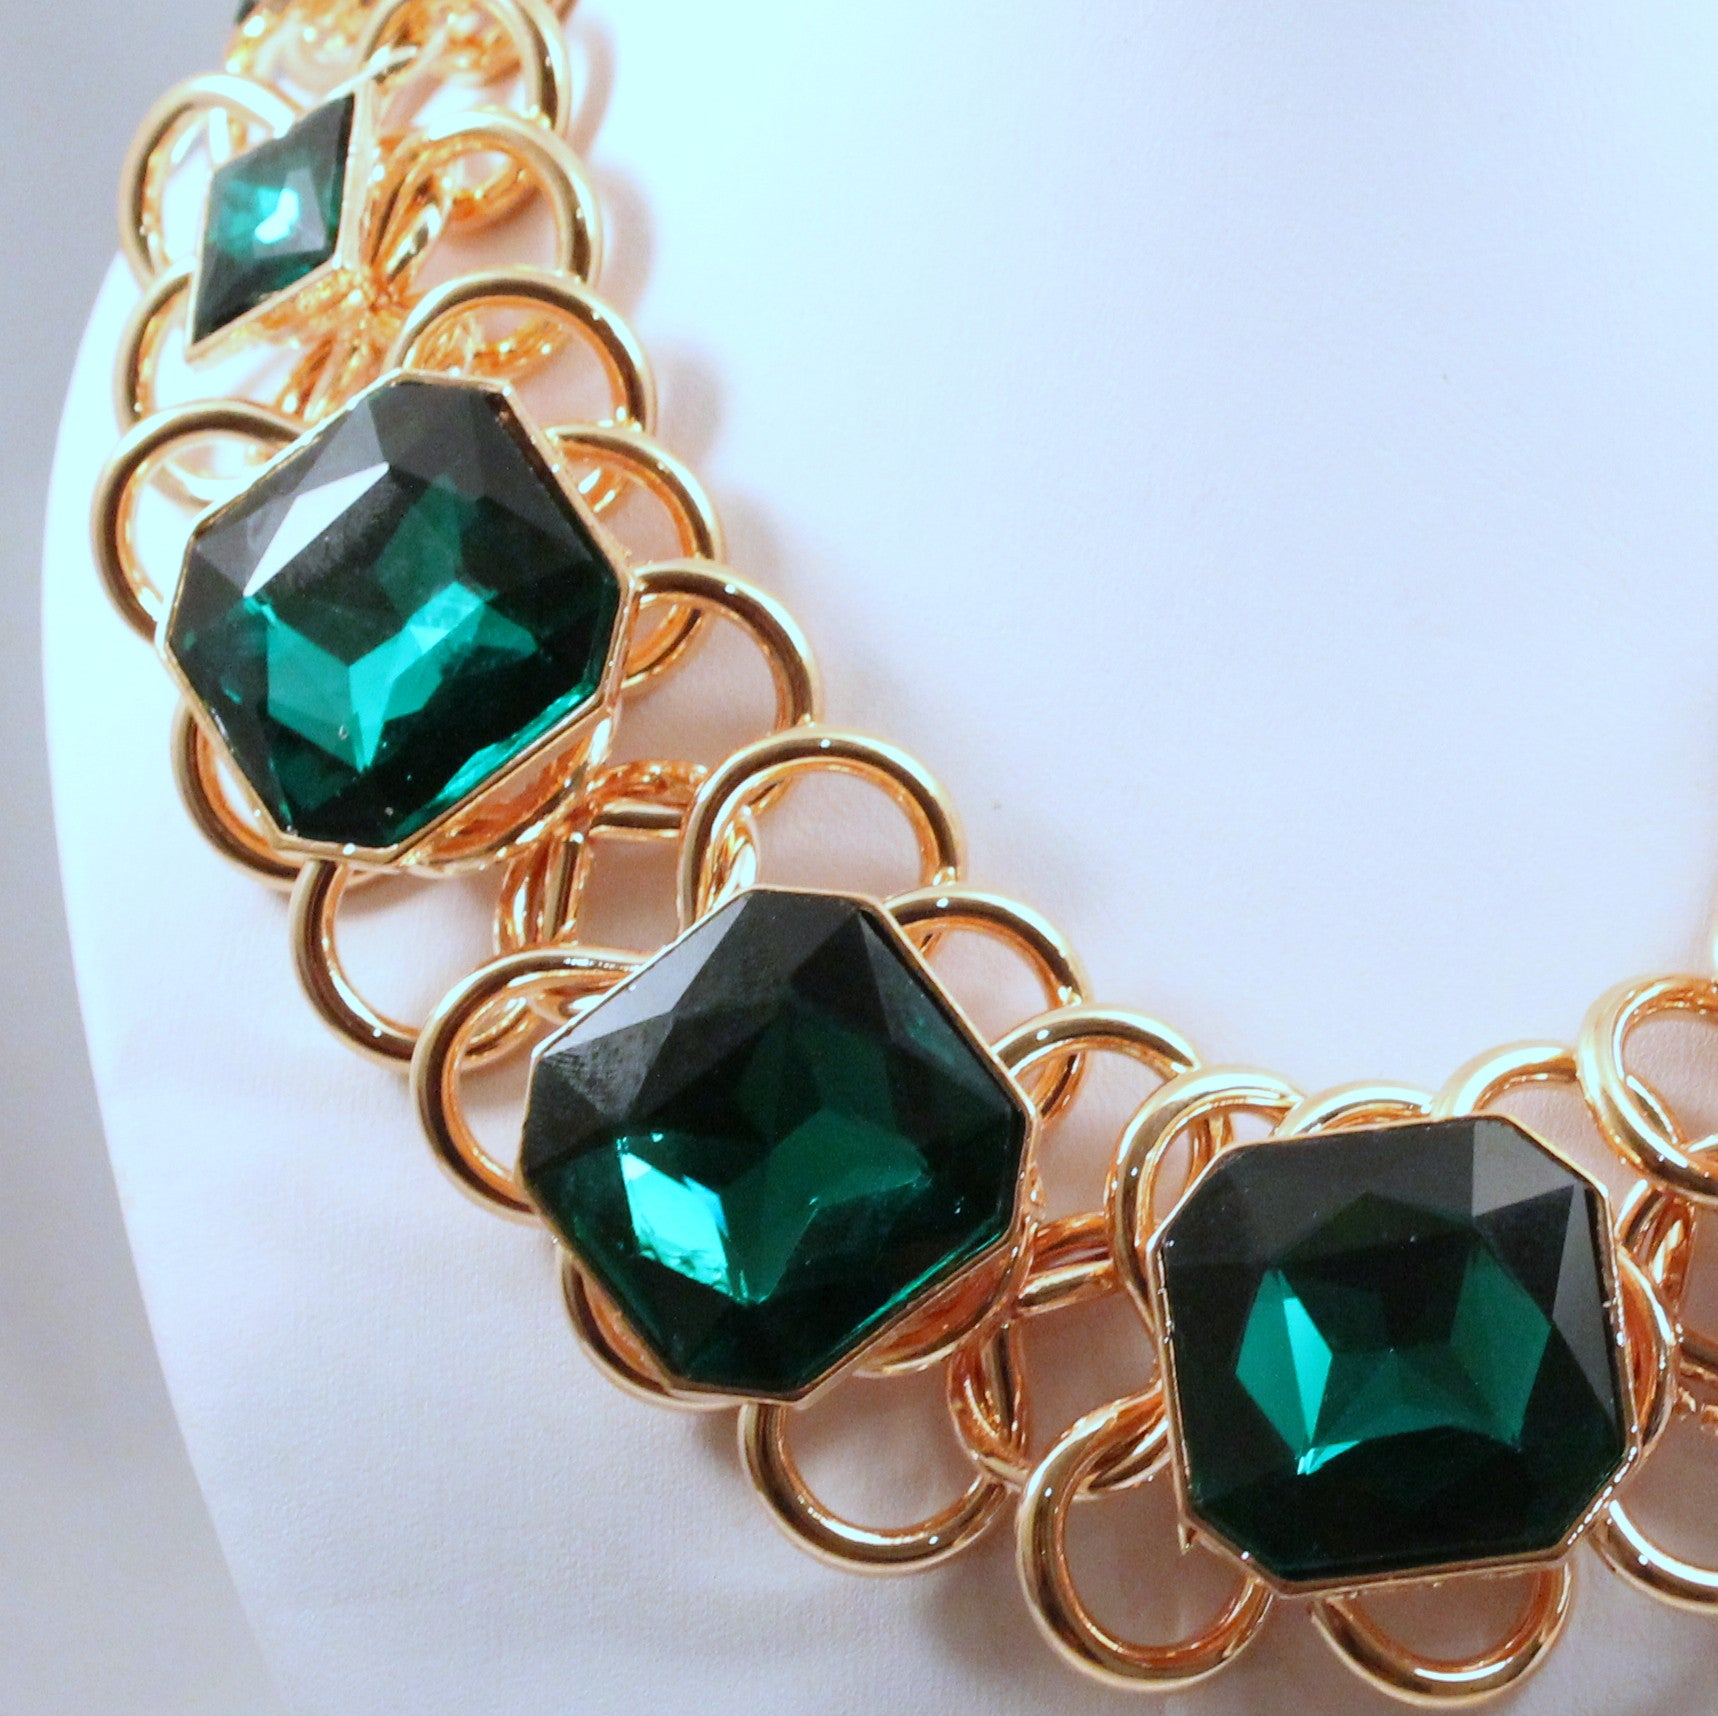 Jade - Statement necklace